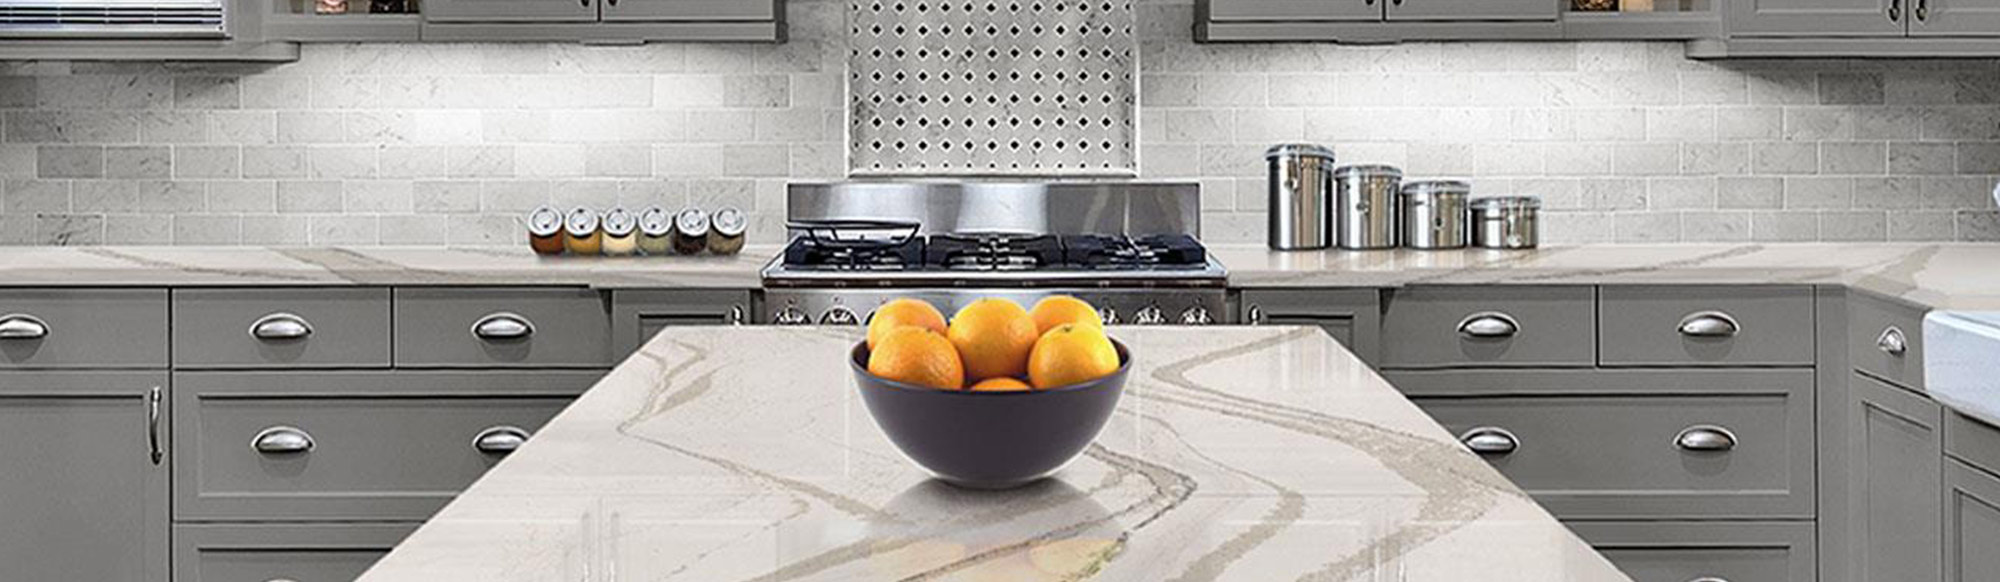 Marble counter top with bowl of oranges